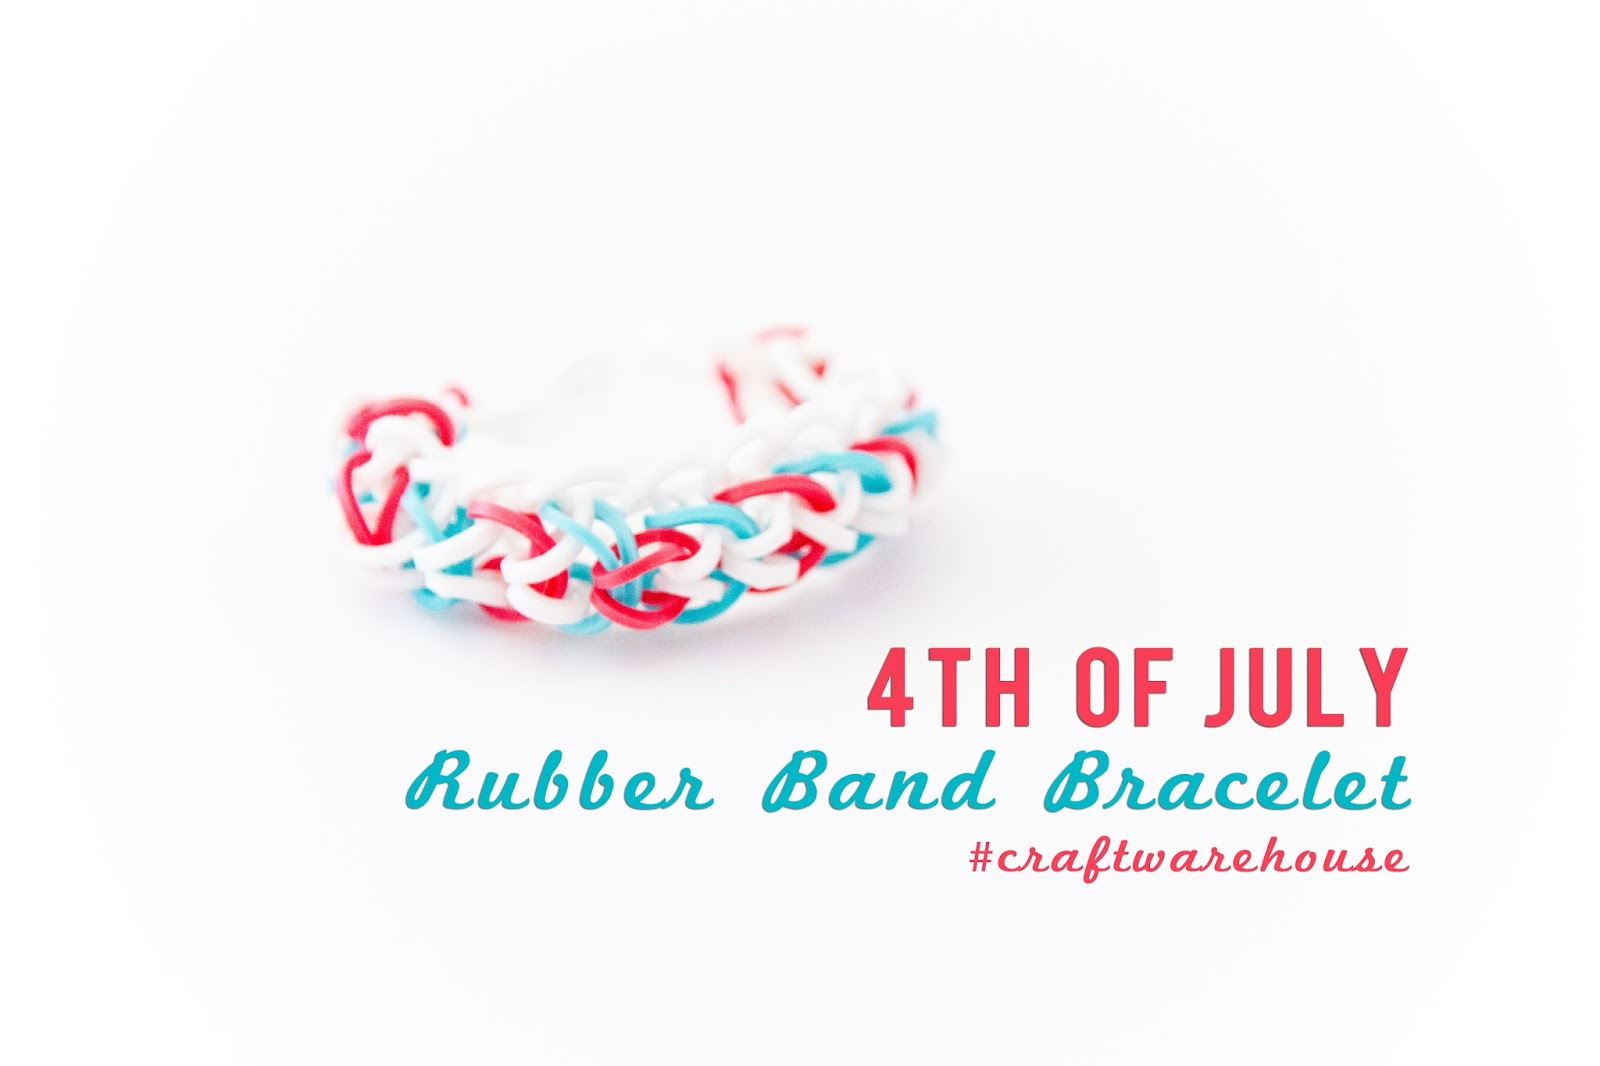 4th of July Rubber Band Bracelet by @createoften for @craftsavvy #craftwarehouse #loombands #rubberbandbracelets